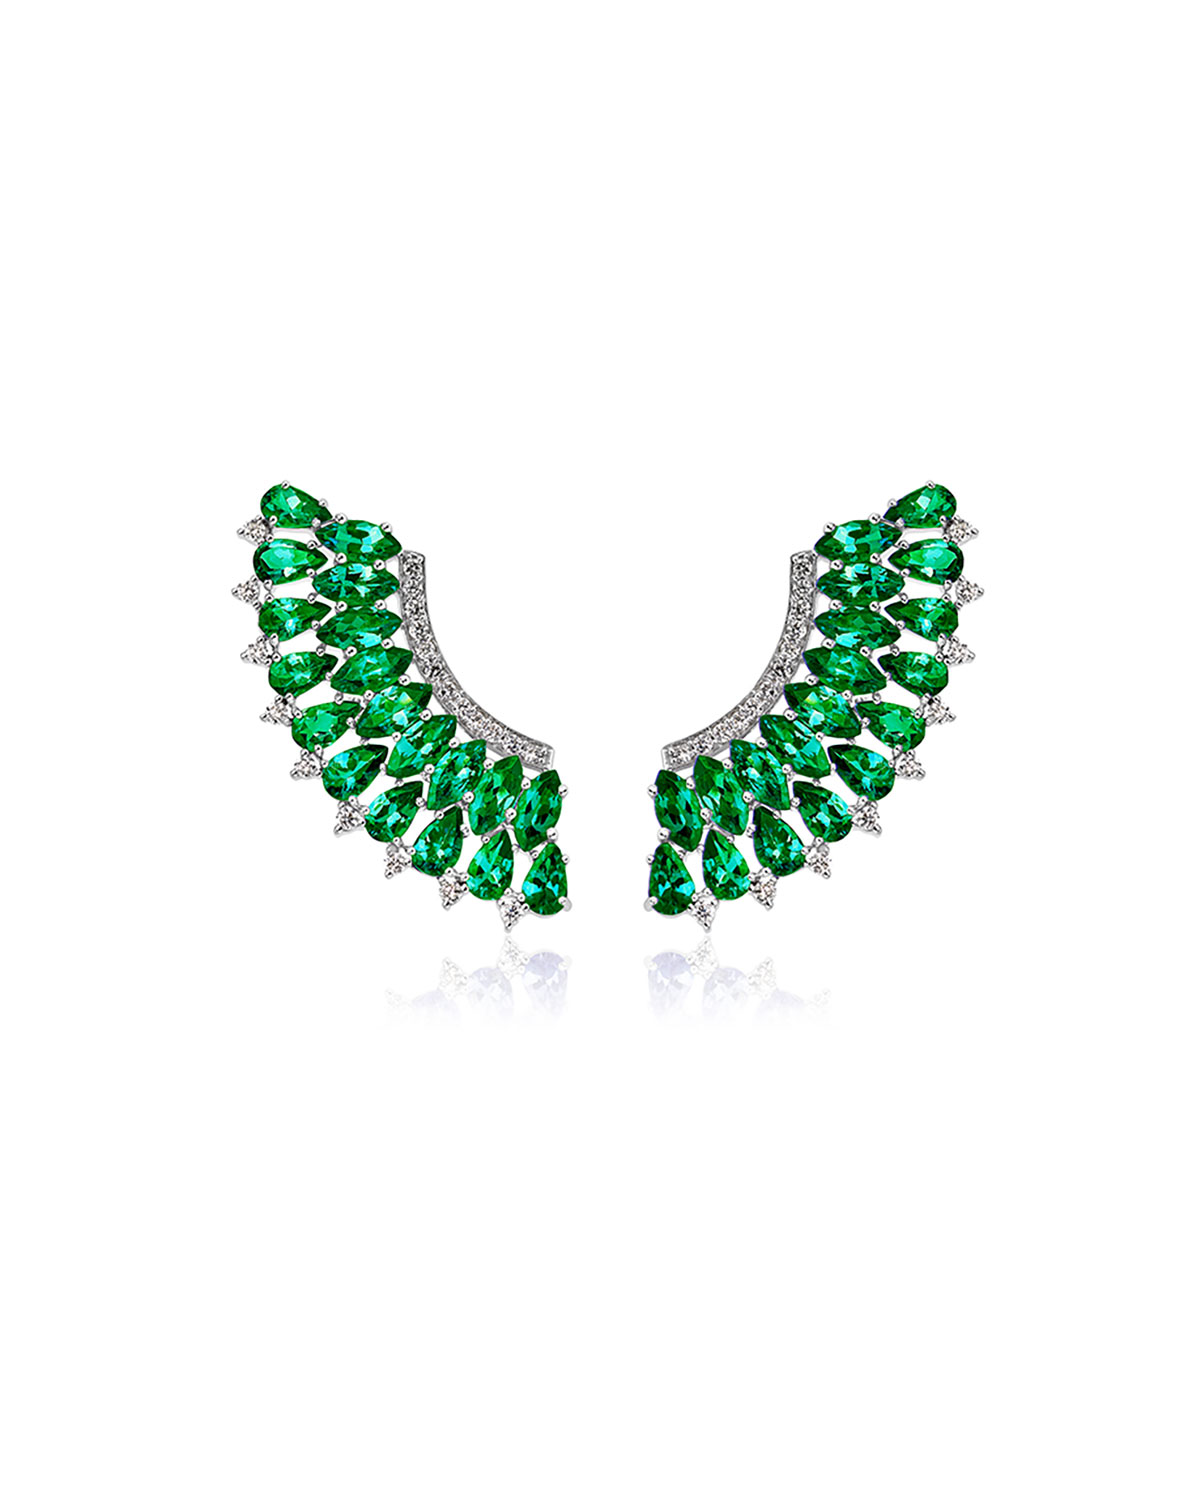 Mirage 18k White Gold Emerald and Diamond Pave Earrings